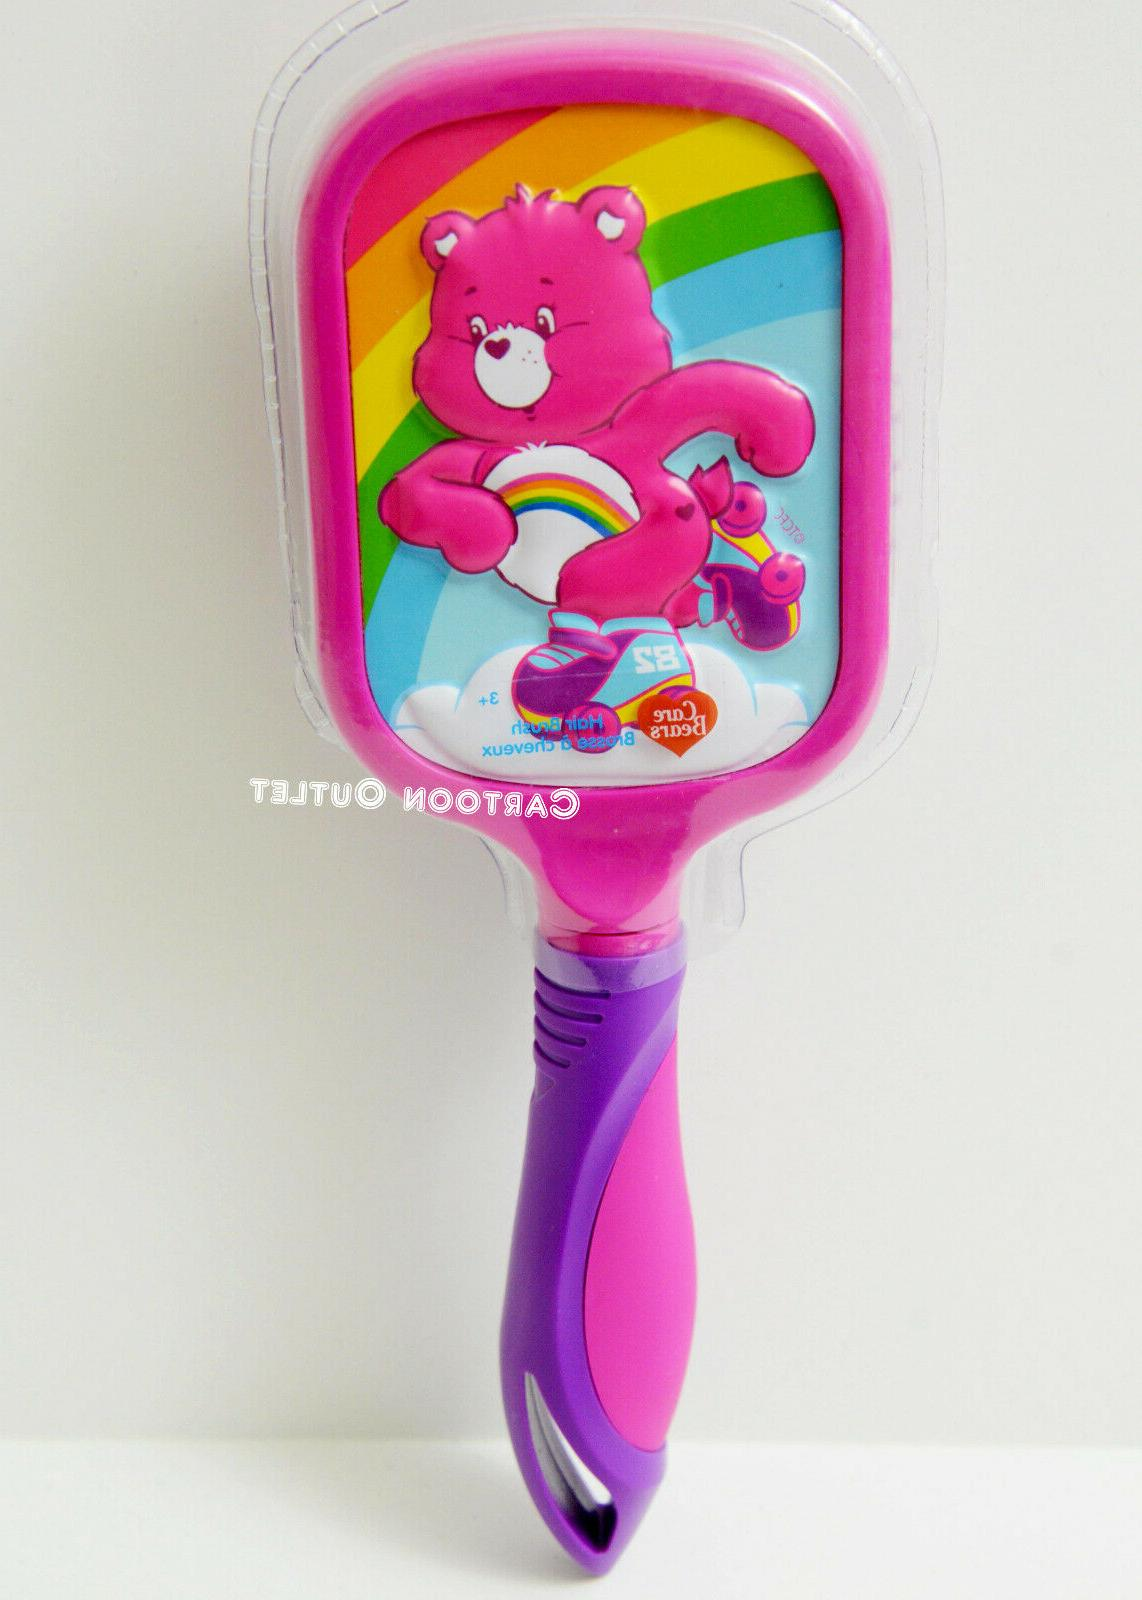 CARE BEARS PINK RAINBOW BALL TIPPED PADDLE LARGE HAIR BRUSH